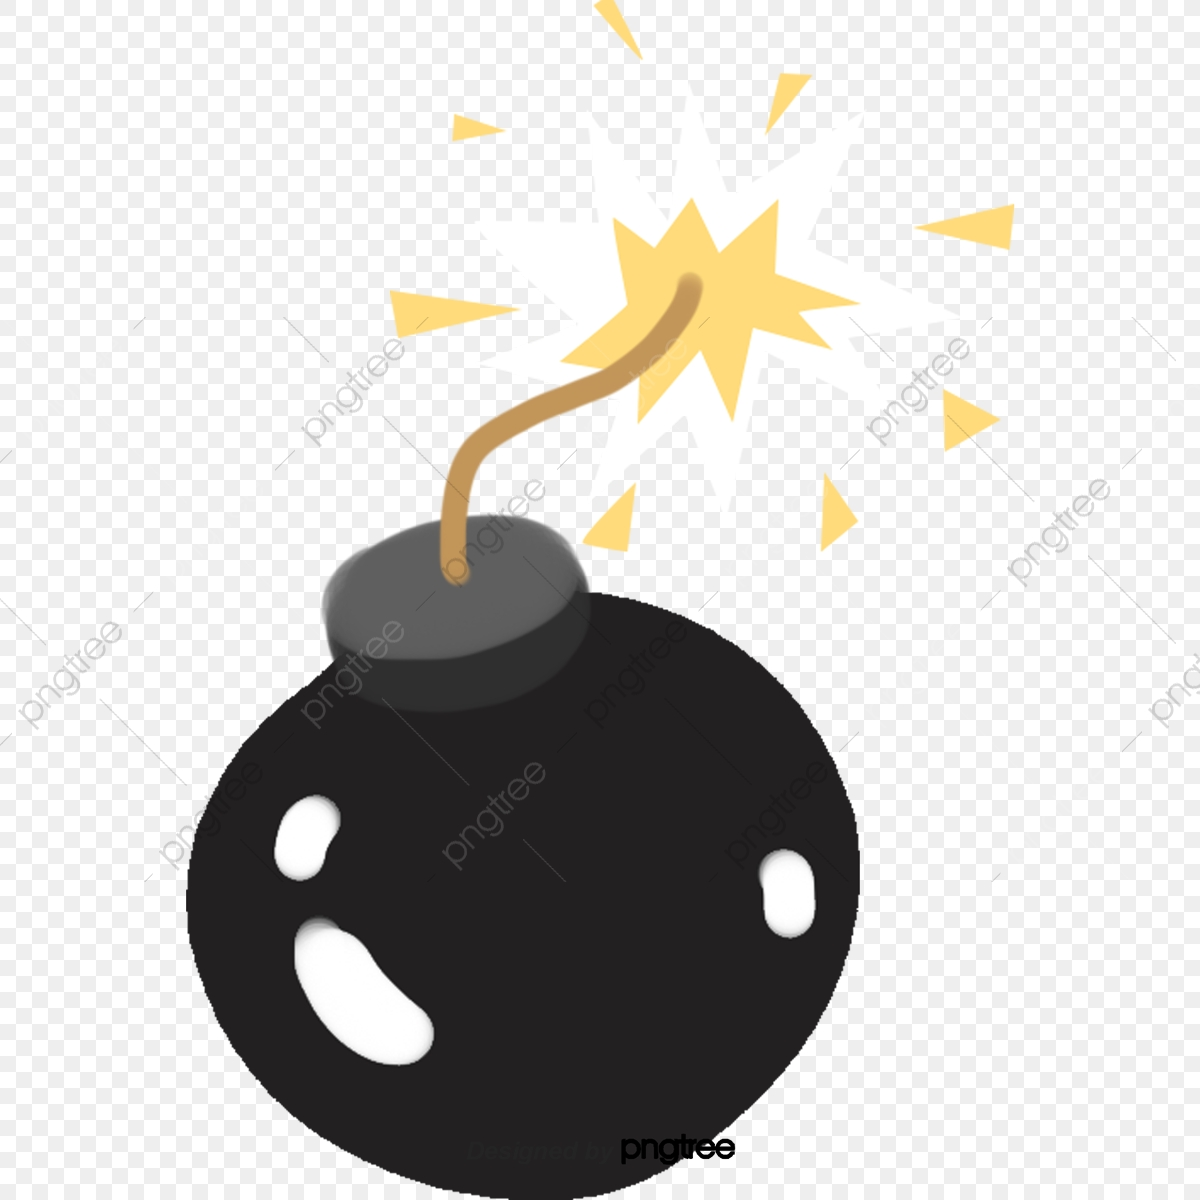 bomb clipart png images vector and psd files free download on pngtree https pngtree com freepng black lit bombs 4284015 html